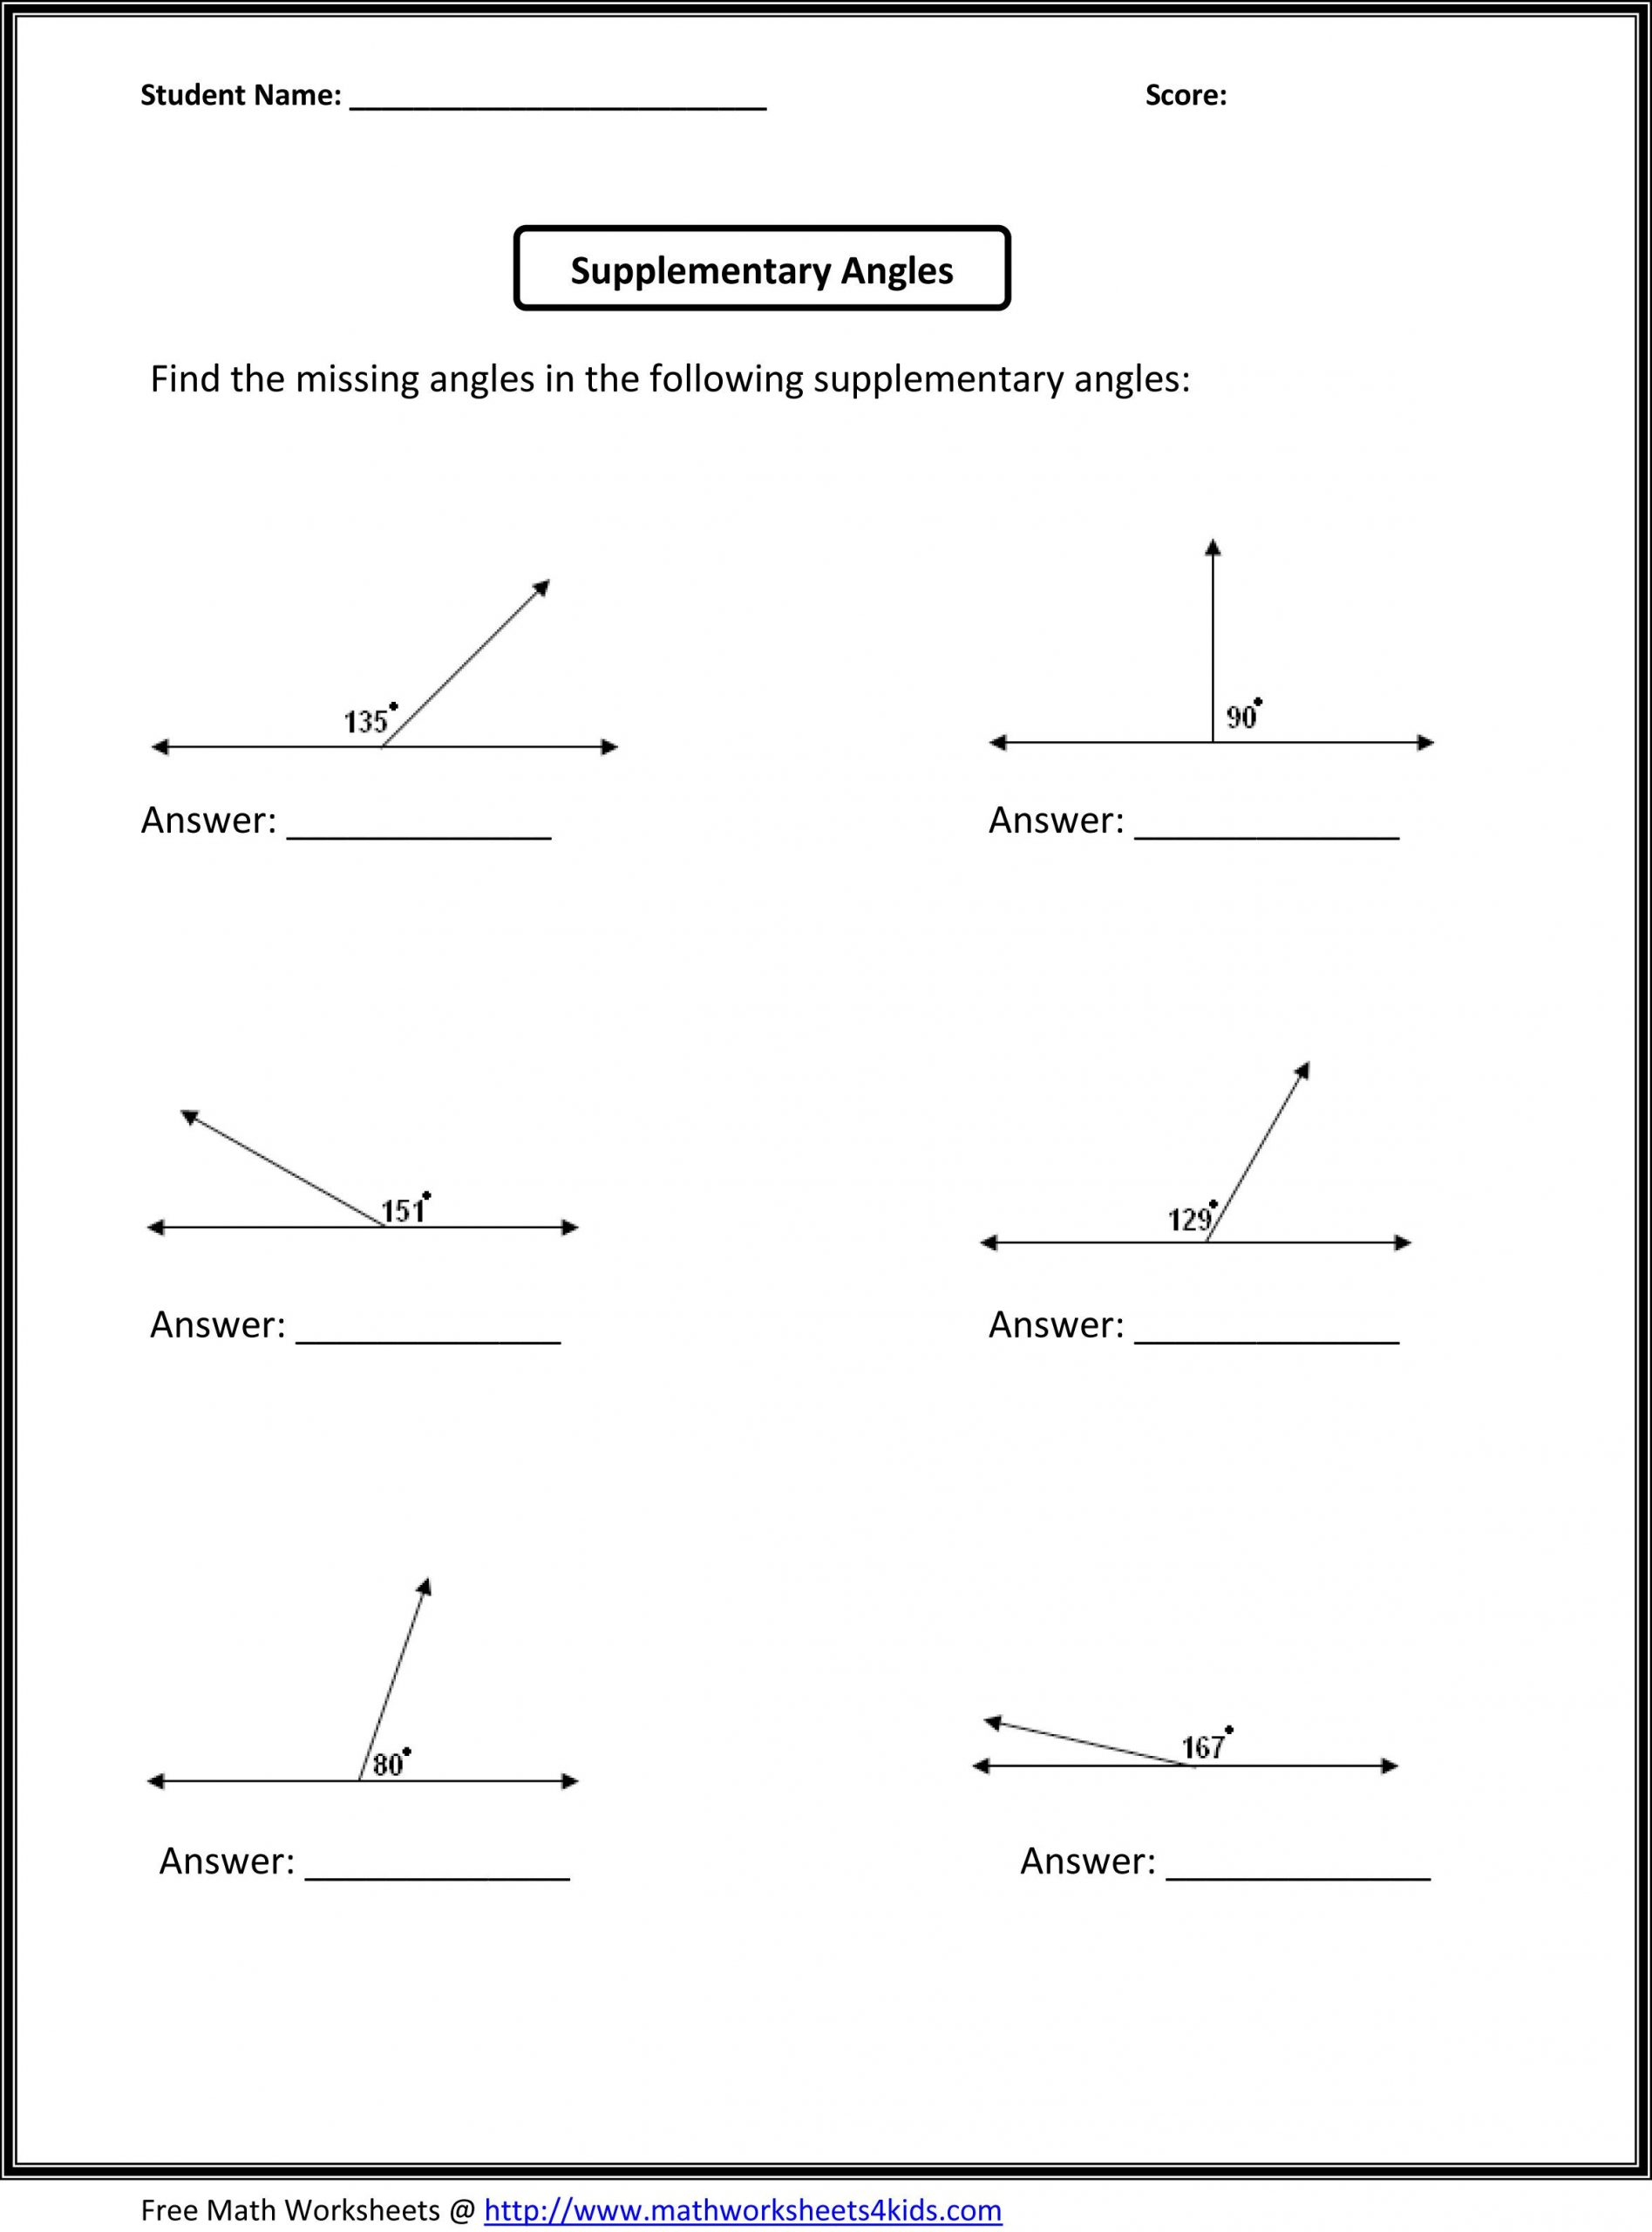 Aloha Math Worksheets Supplementary Angles